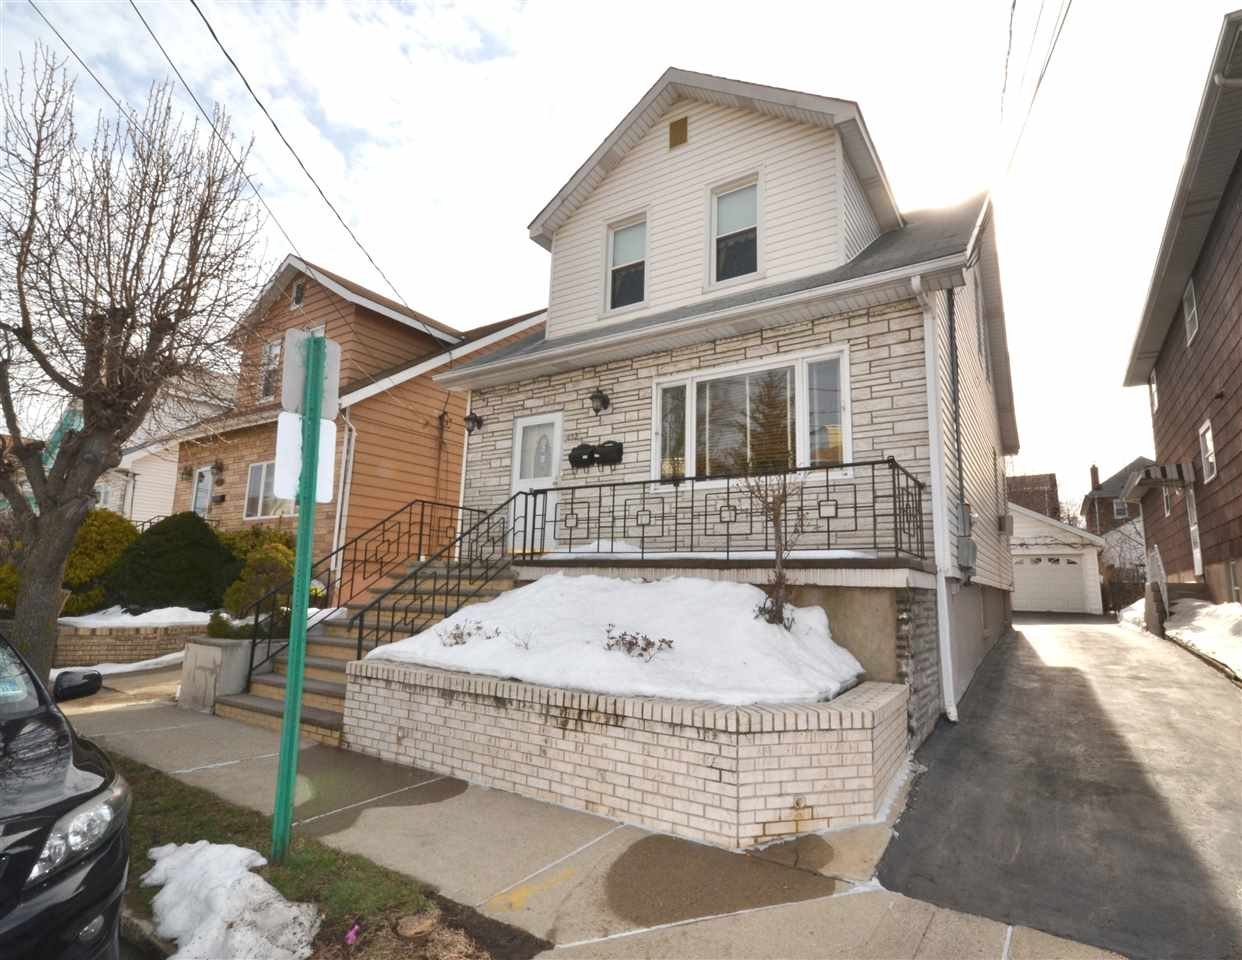 432 9TH ST, Fairview, NJ 07022